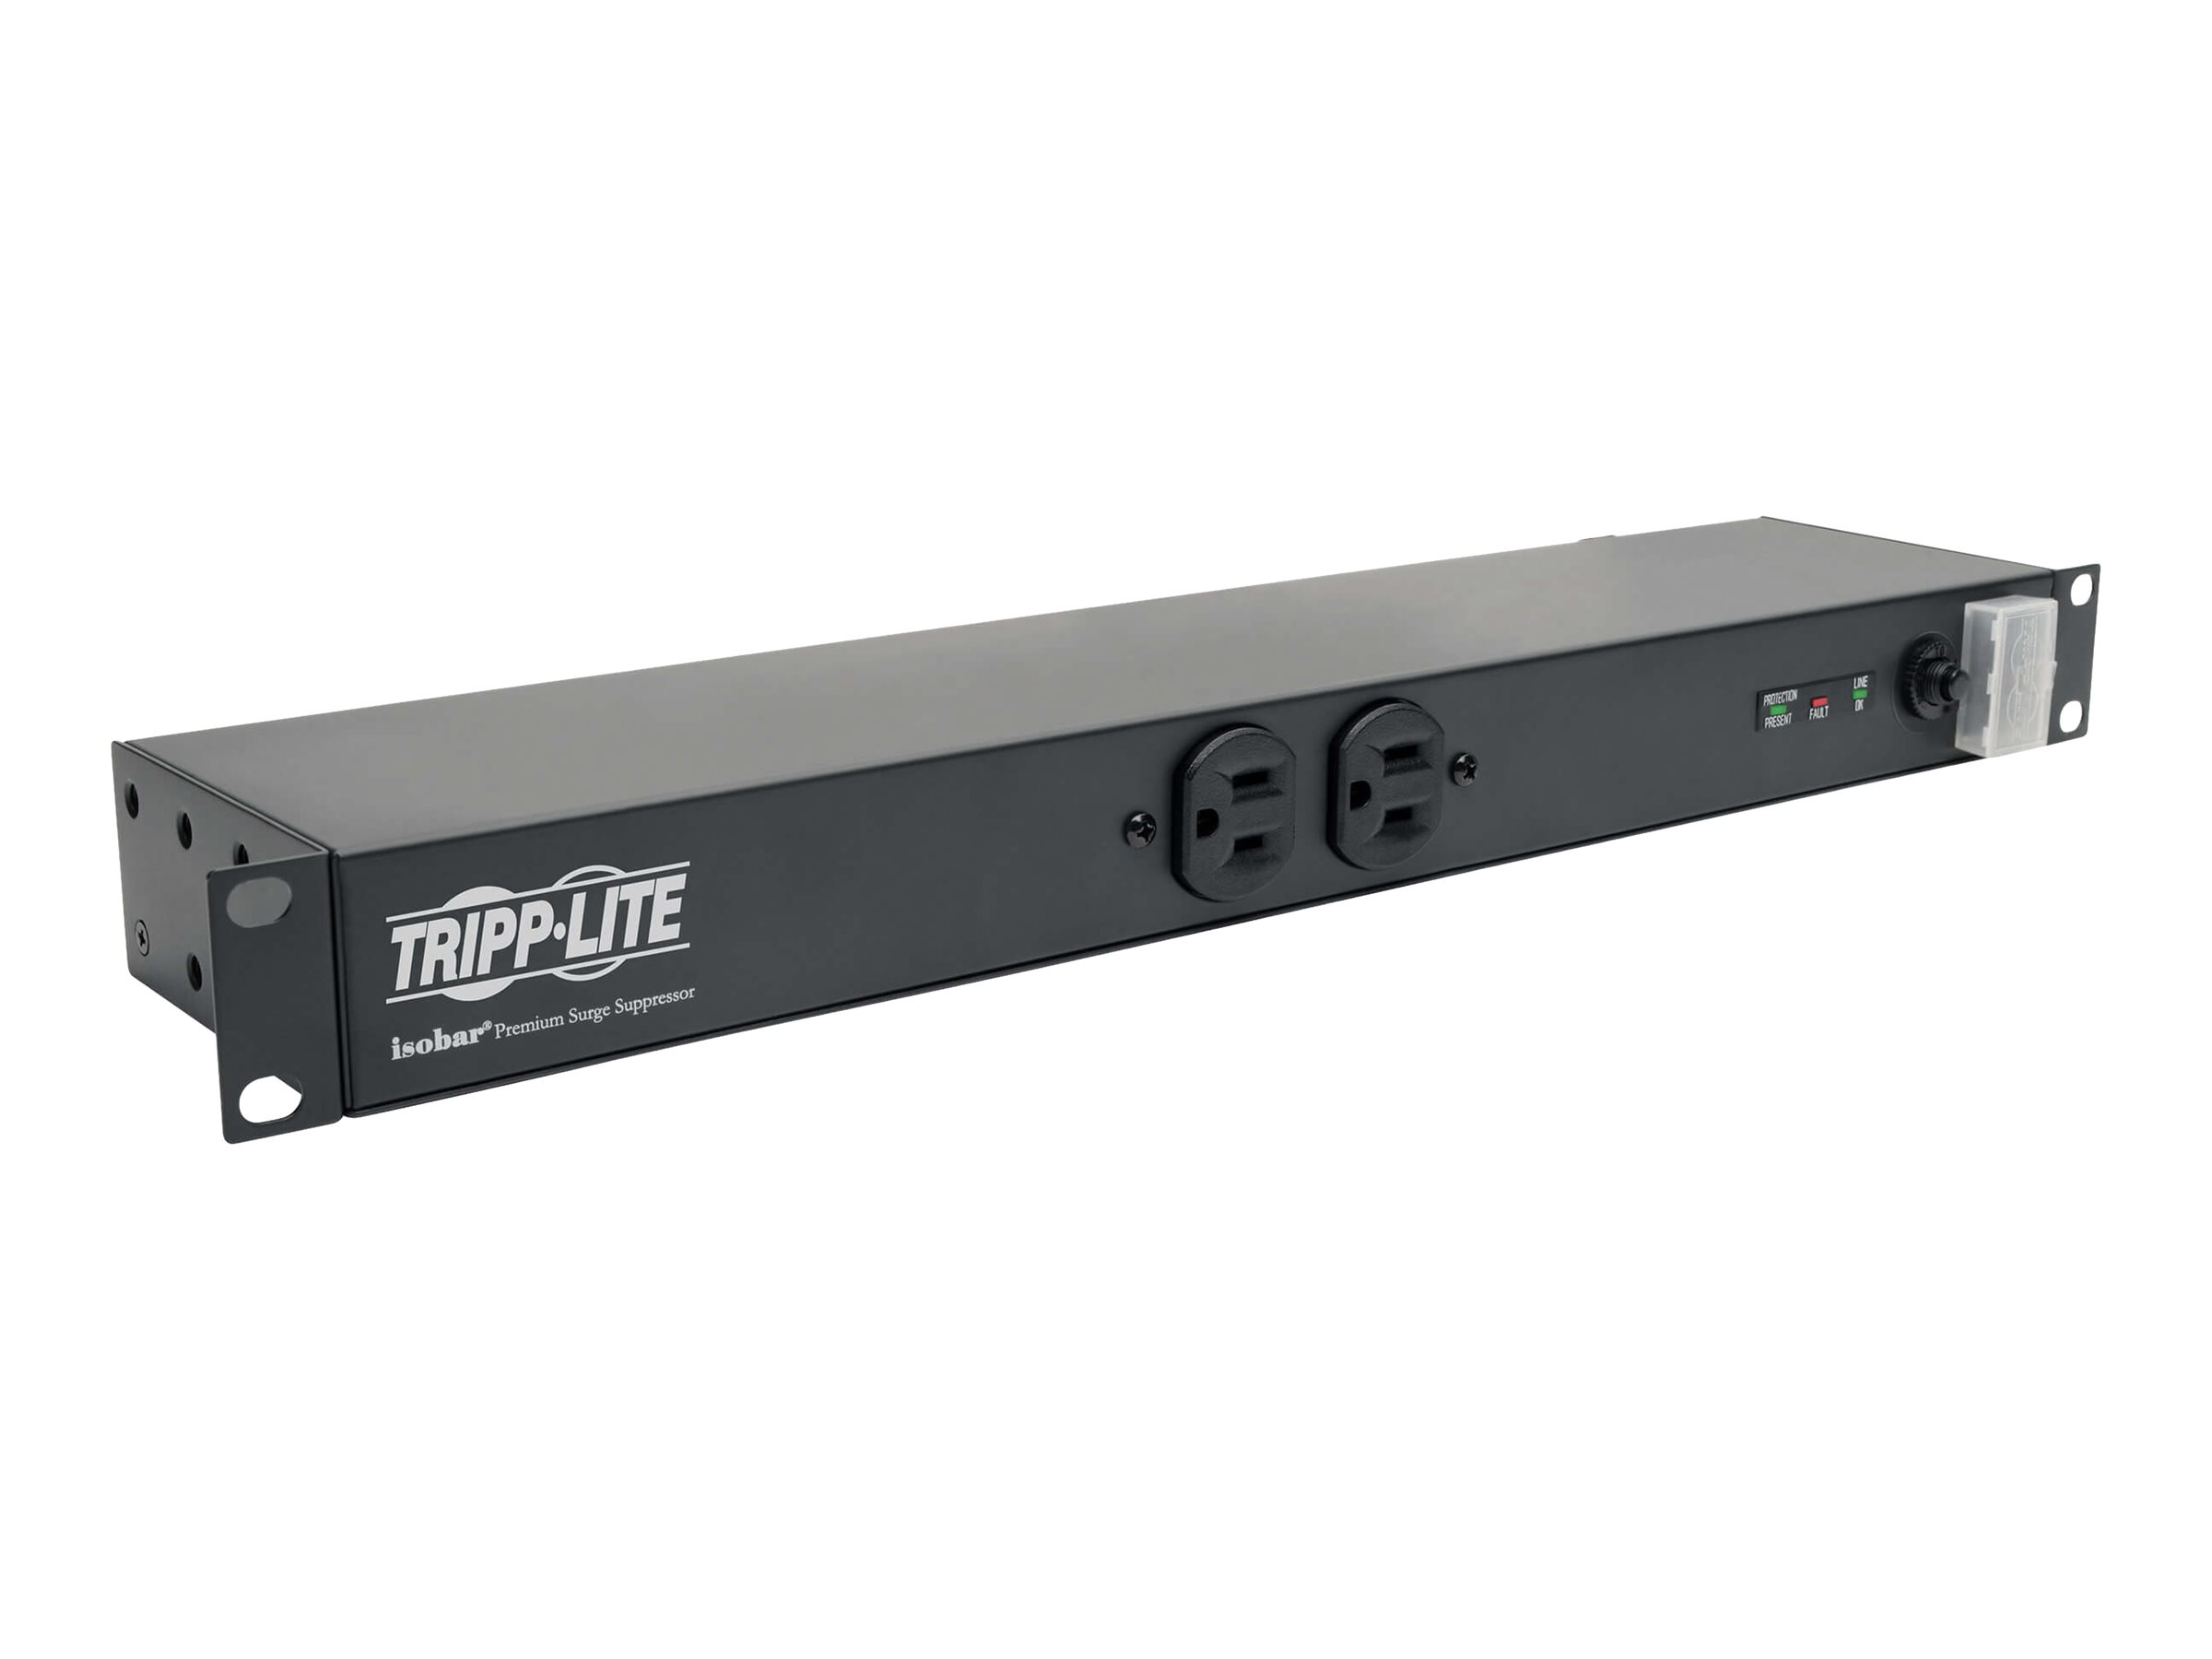 Tripp Lite Isobar Surge Protector Rackmount 12 Outlet 15' Cord Metal 1URM - surge protector